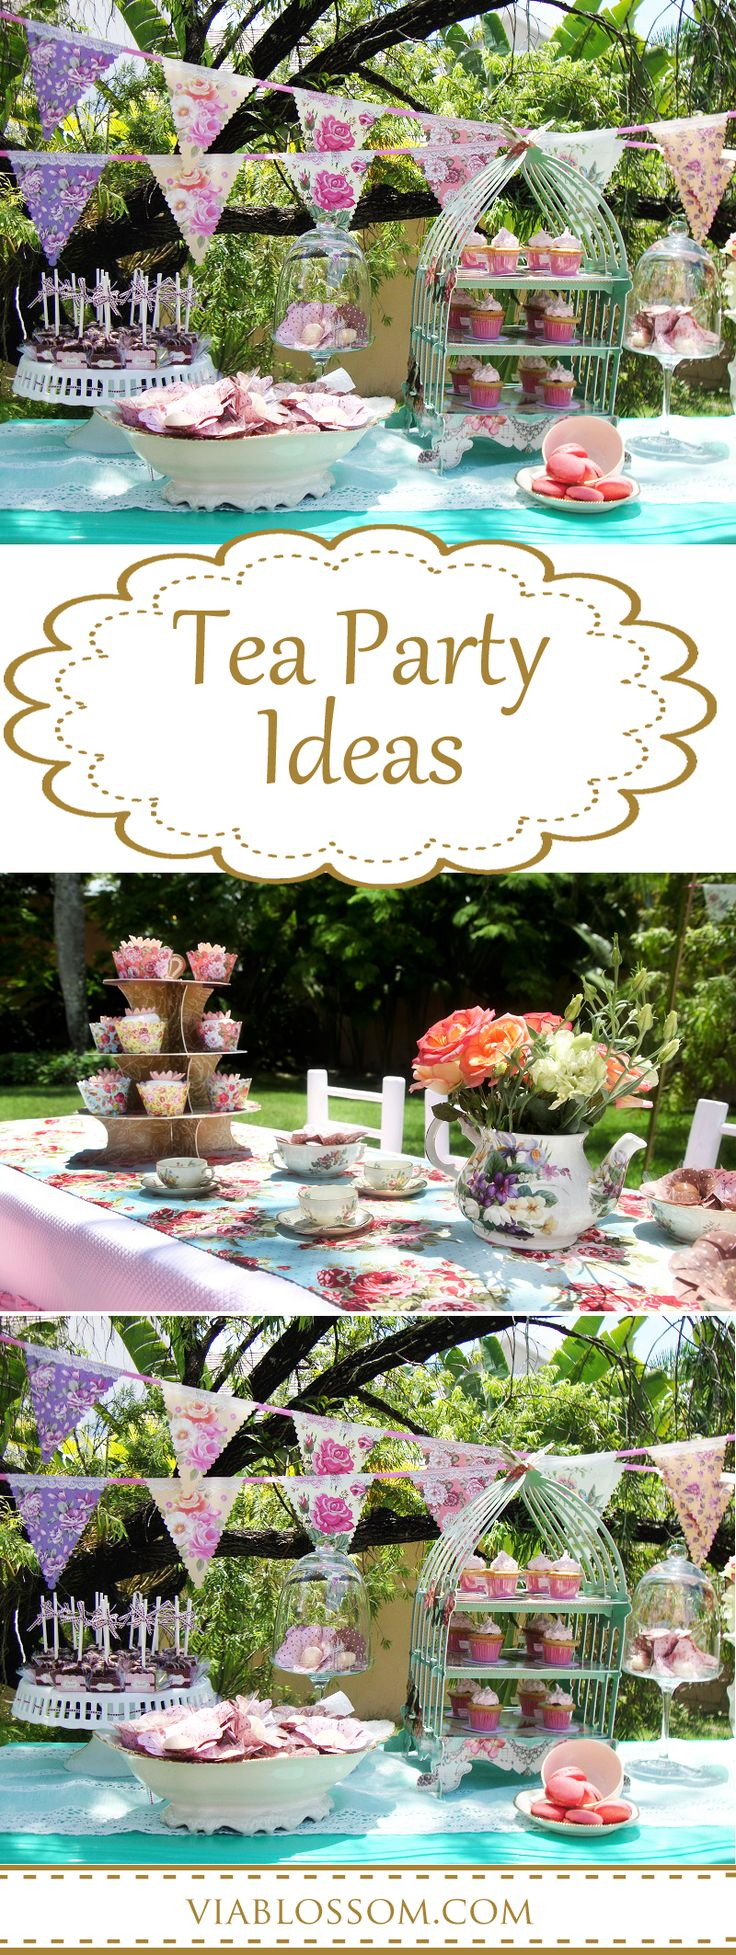 Garden Tea Party Baby Shower Ideas garden themed party ideas for baby shower 78 best images about secret garden baby shower on Scrumptious Tea Party Via Blossom Tea Party Ideas